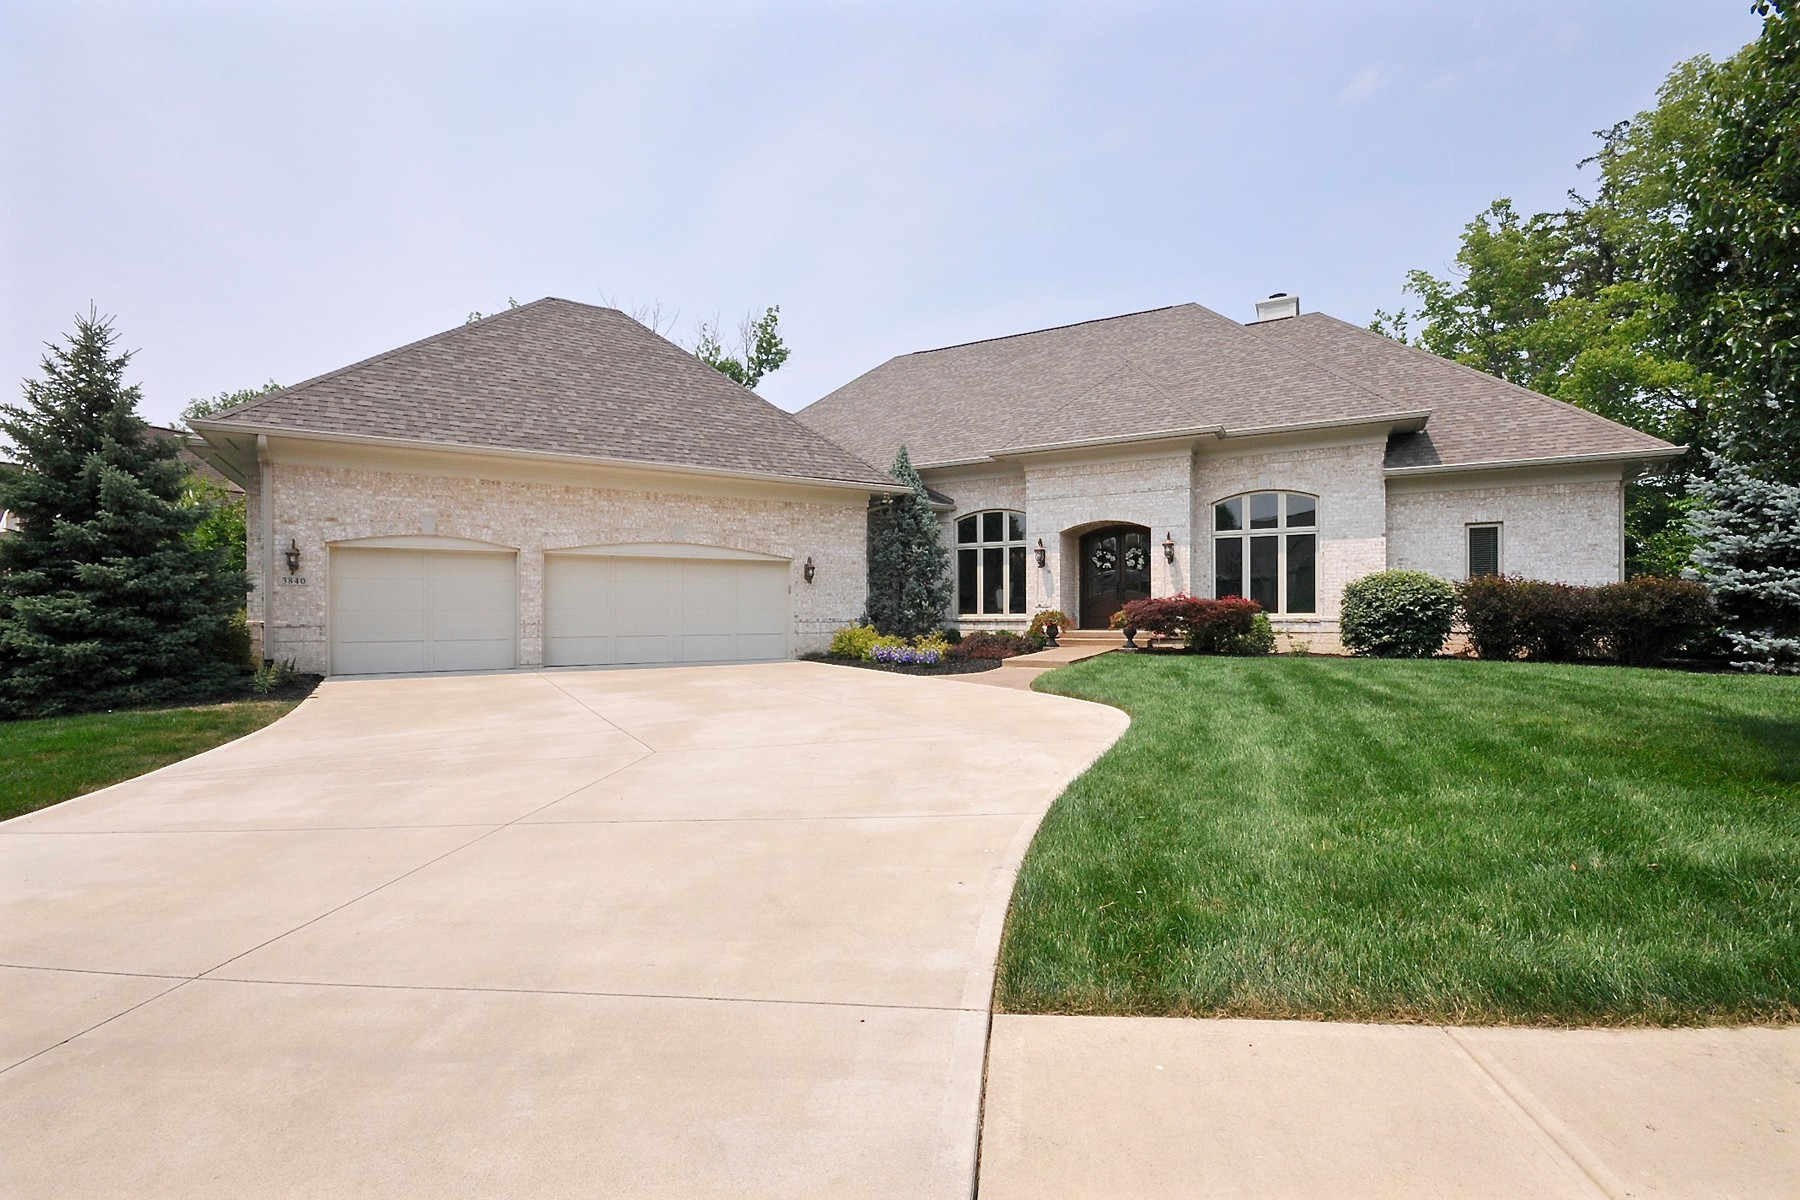 Single Family Home for Sale at Pristine Bridgewater Home 3840 Falls Circle Carmel, Indiana 46033 United States